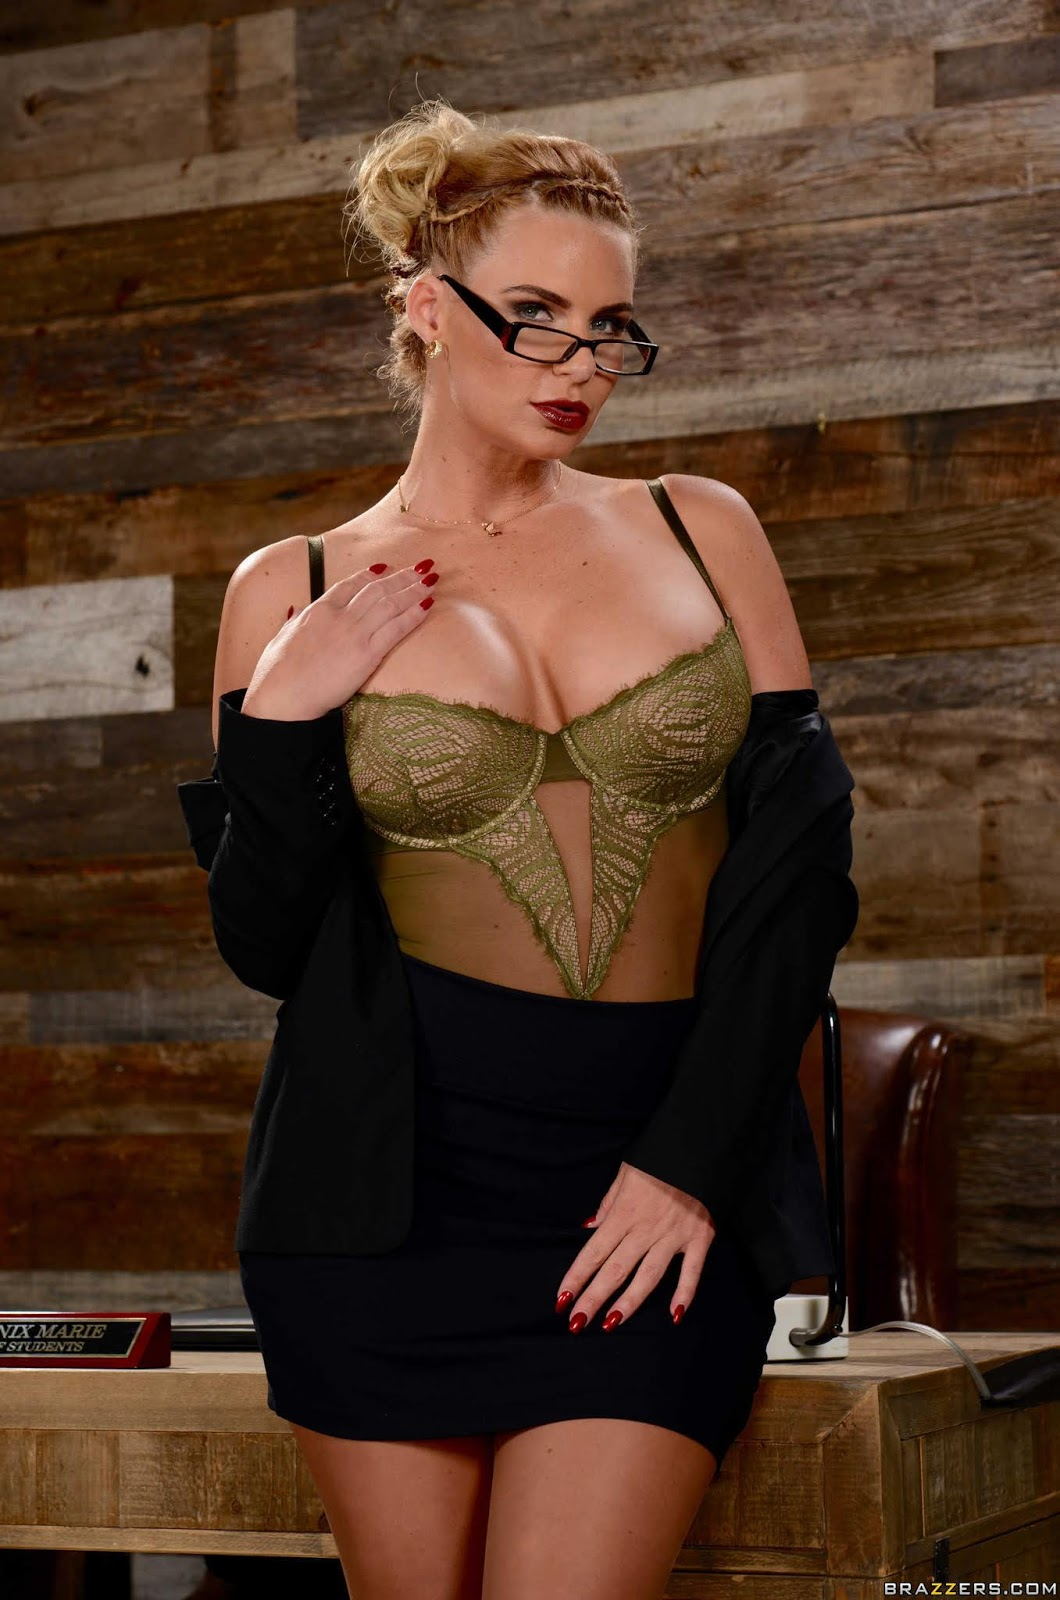 Phoenix-Marie-%3A-Breaking-And-Entering-And-Insertion-%23%23-BRAZZERS-g6vw8wpz5w.jpg